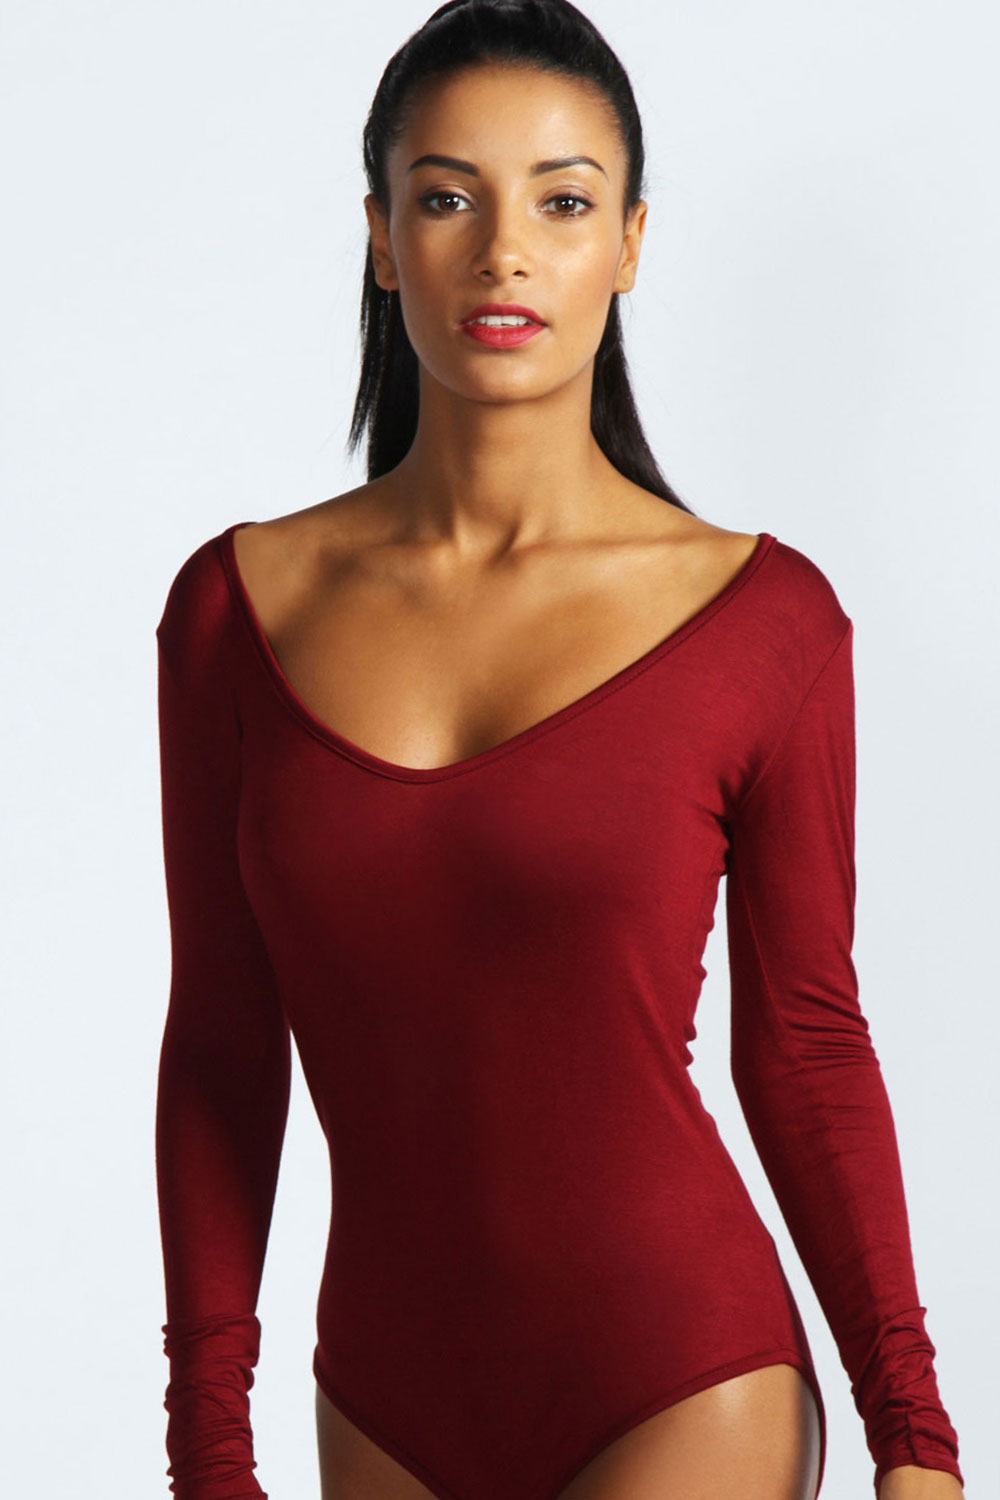 Shop bodysuits - including off-the-shoulder, strapless and deep-v styles - at American Apparel. Free shipping and returns on eligible orders. Shop online.